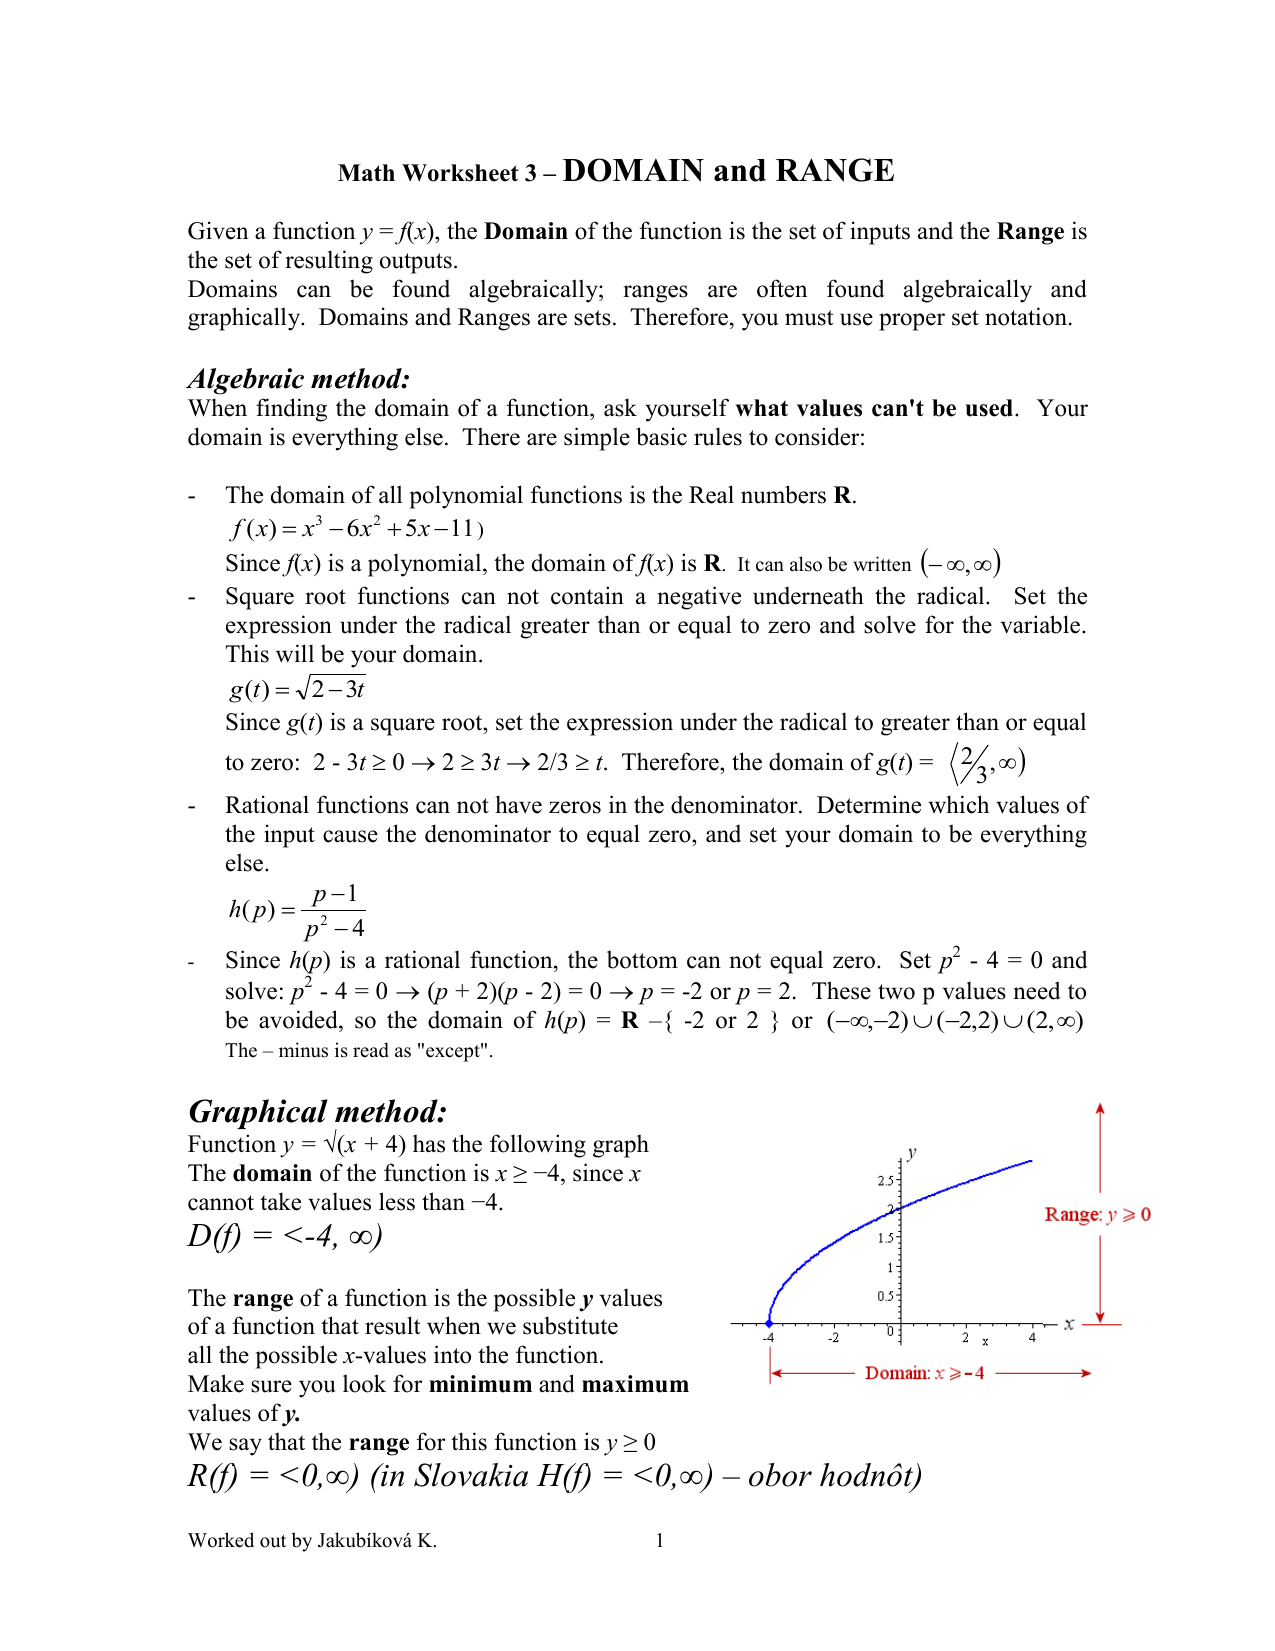 Domain And Range Worksheet Alge 2   Lobo Black together with  besides  together with Domain and Range Worksheet further 15 Domain And Range Of Graphs Worksheet Paystub Confirmation in addition Alge 1 Worksheets   Domain and Range Worksheets likewise  additionally 11  graph domain and range  domain and range math worksheets as well position Of Functions Worksheet 2 Answer Key Inspirational Kateho moreover  together with 1 2 Domain And Range Worksheet Day Youtube   Lettering Site additionally piecewise functions worksheet answers alge 1   WRITING WORKSHEET in addition Worksheet Function Notation Domain Range   Homeshealth info as well  also Domain Alge Math Domain And Range Math Worksheets Answers besides Domain and Range Worksheet Answers Inspirational Graphing Rational. on domain and range worksheet 1